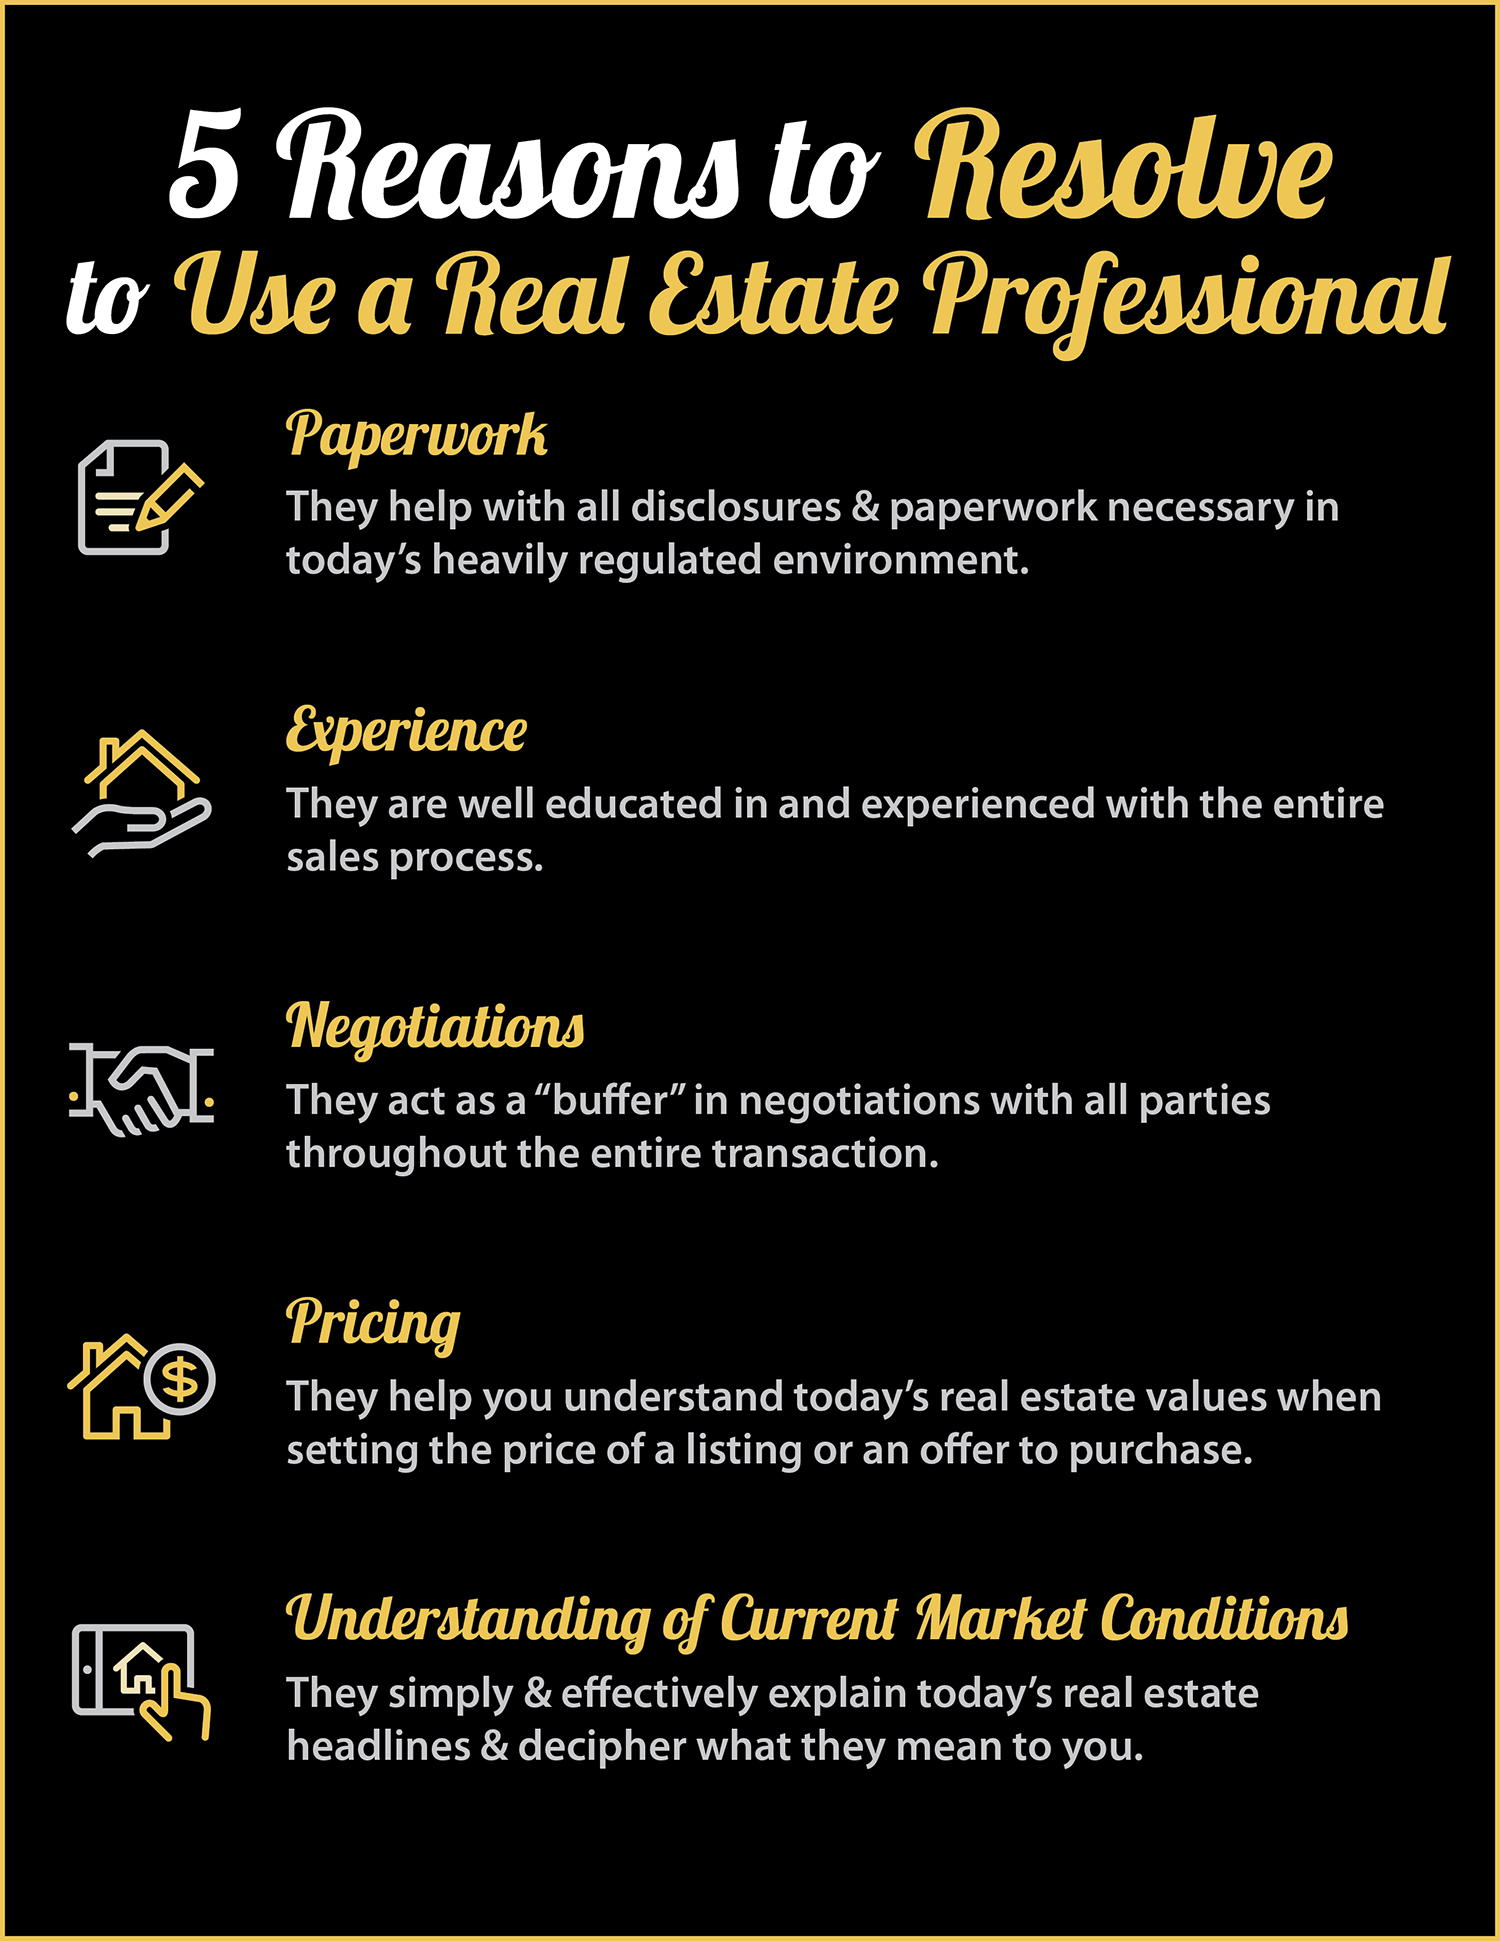 5 Reasons Why You Should Use A Real Estate Professional